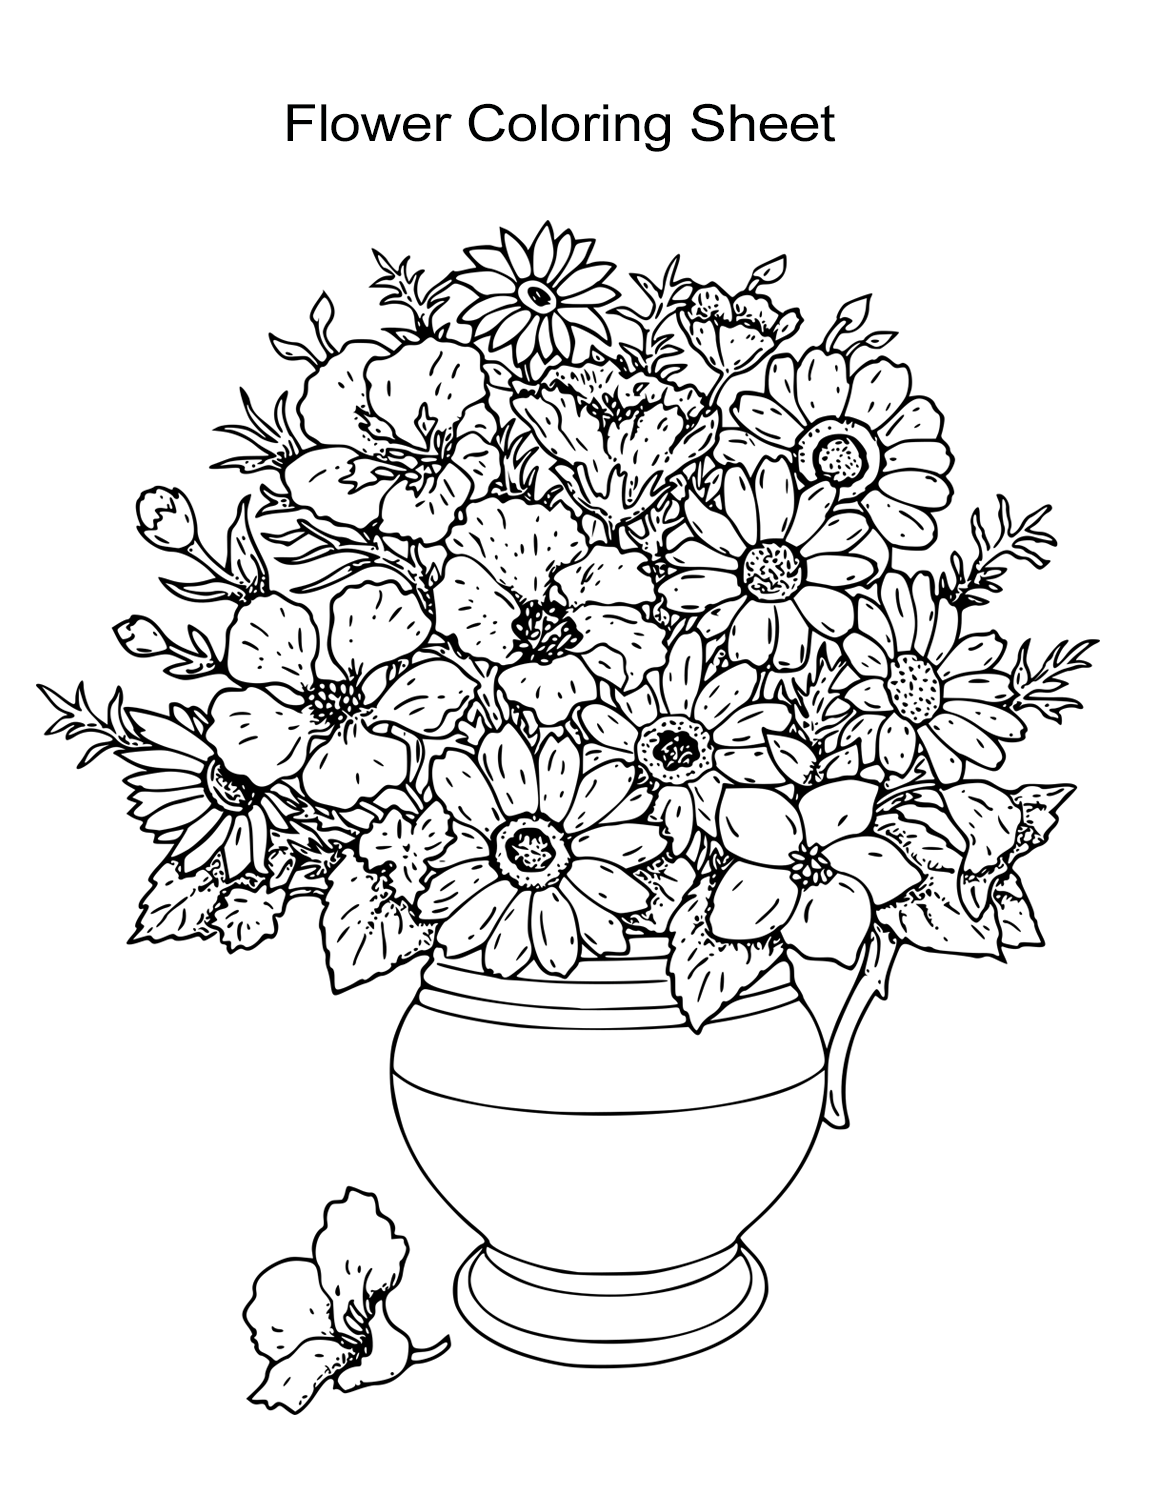 flower coloring pages for kids 10 flower coloring sheets for girls and boys all esl flower pages for coloring kids